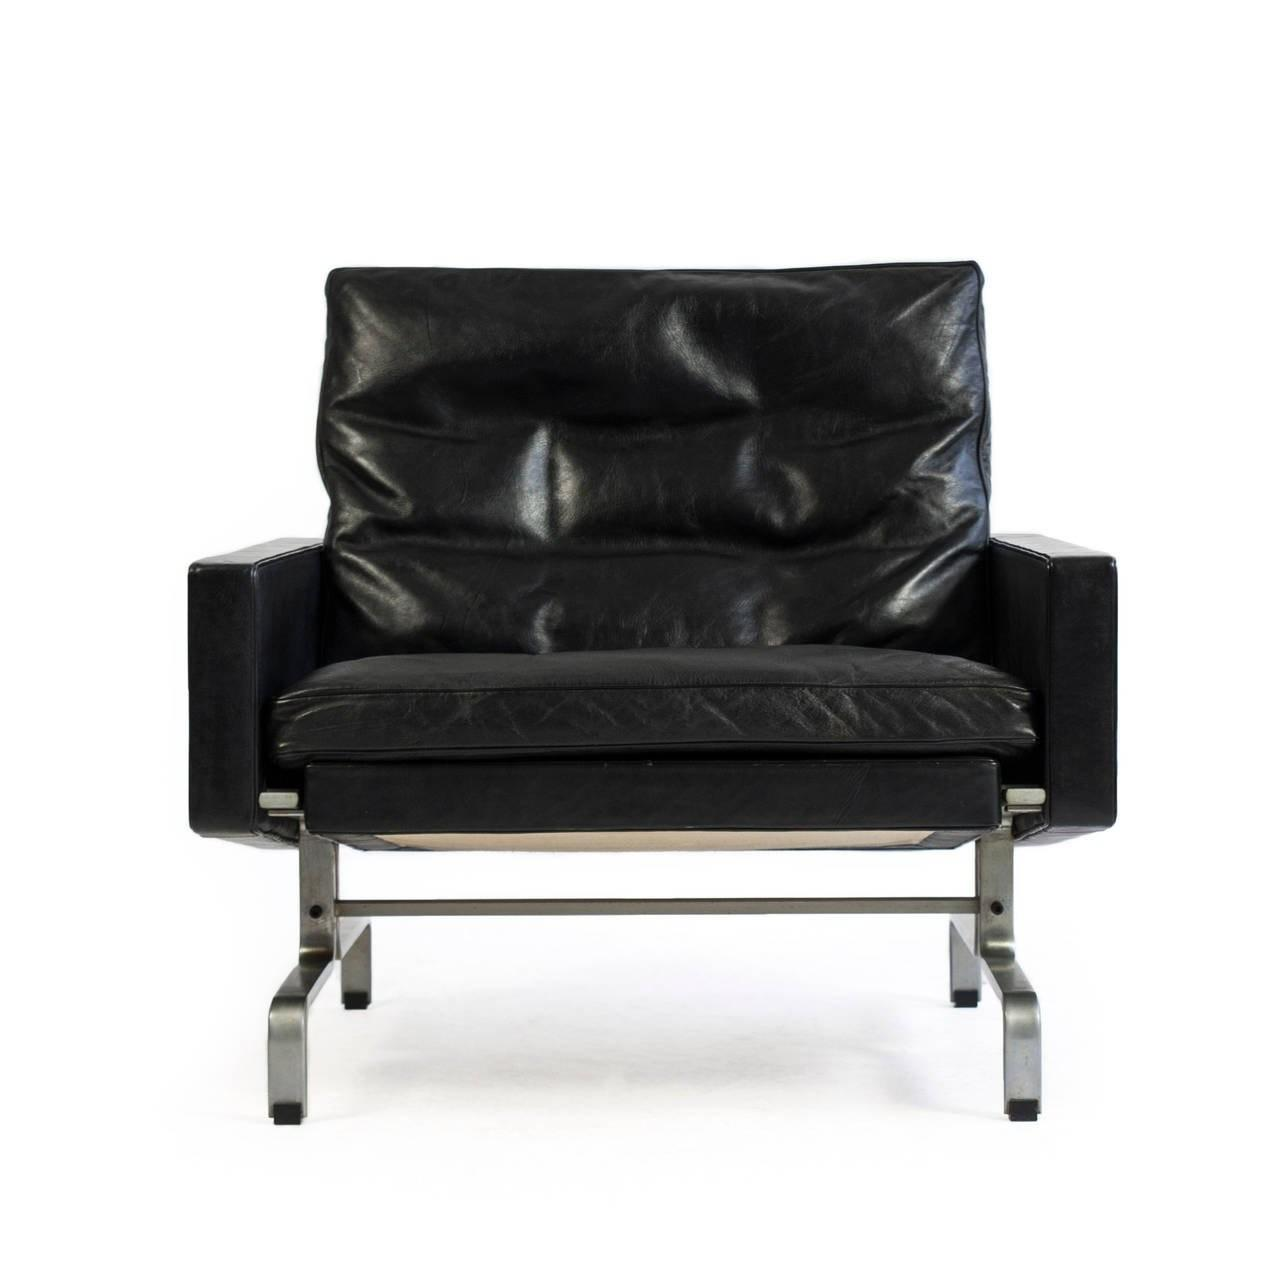 Poul Kjaerholm Chair Kold Christensen